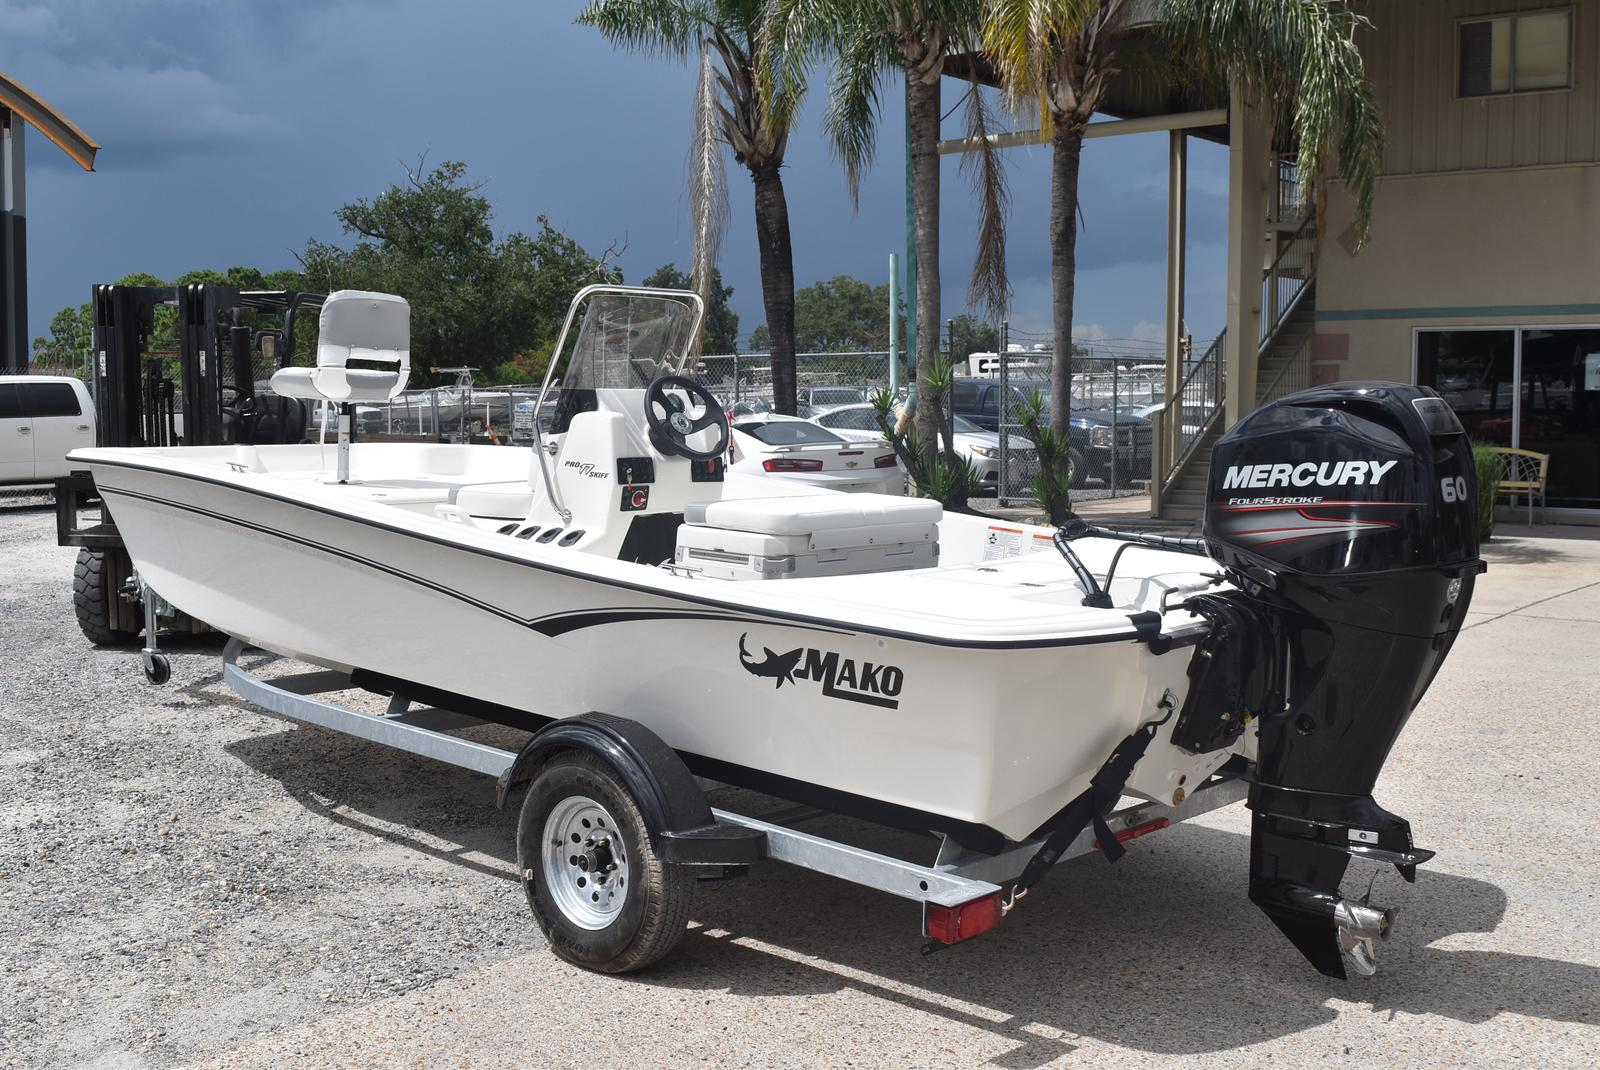 2020 Mako boat for sale, model of the boat is Pro Skiff 17, 75 ELPT & Image # 205 of 702